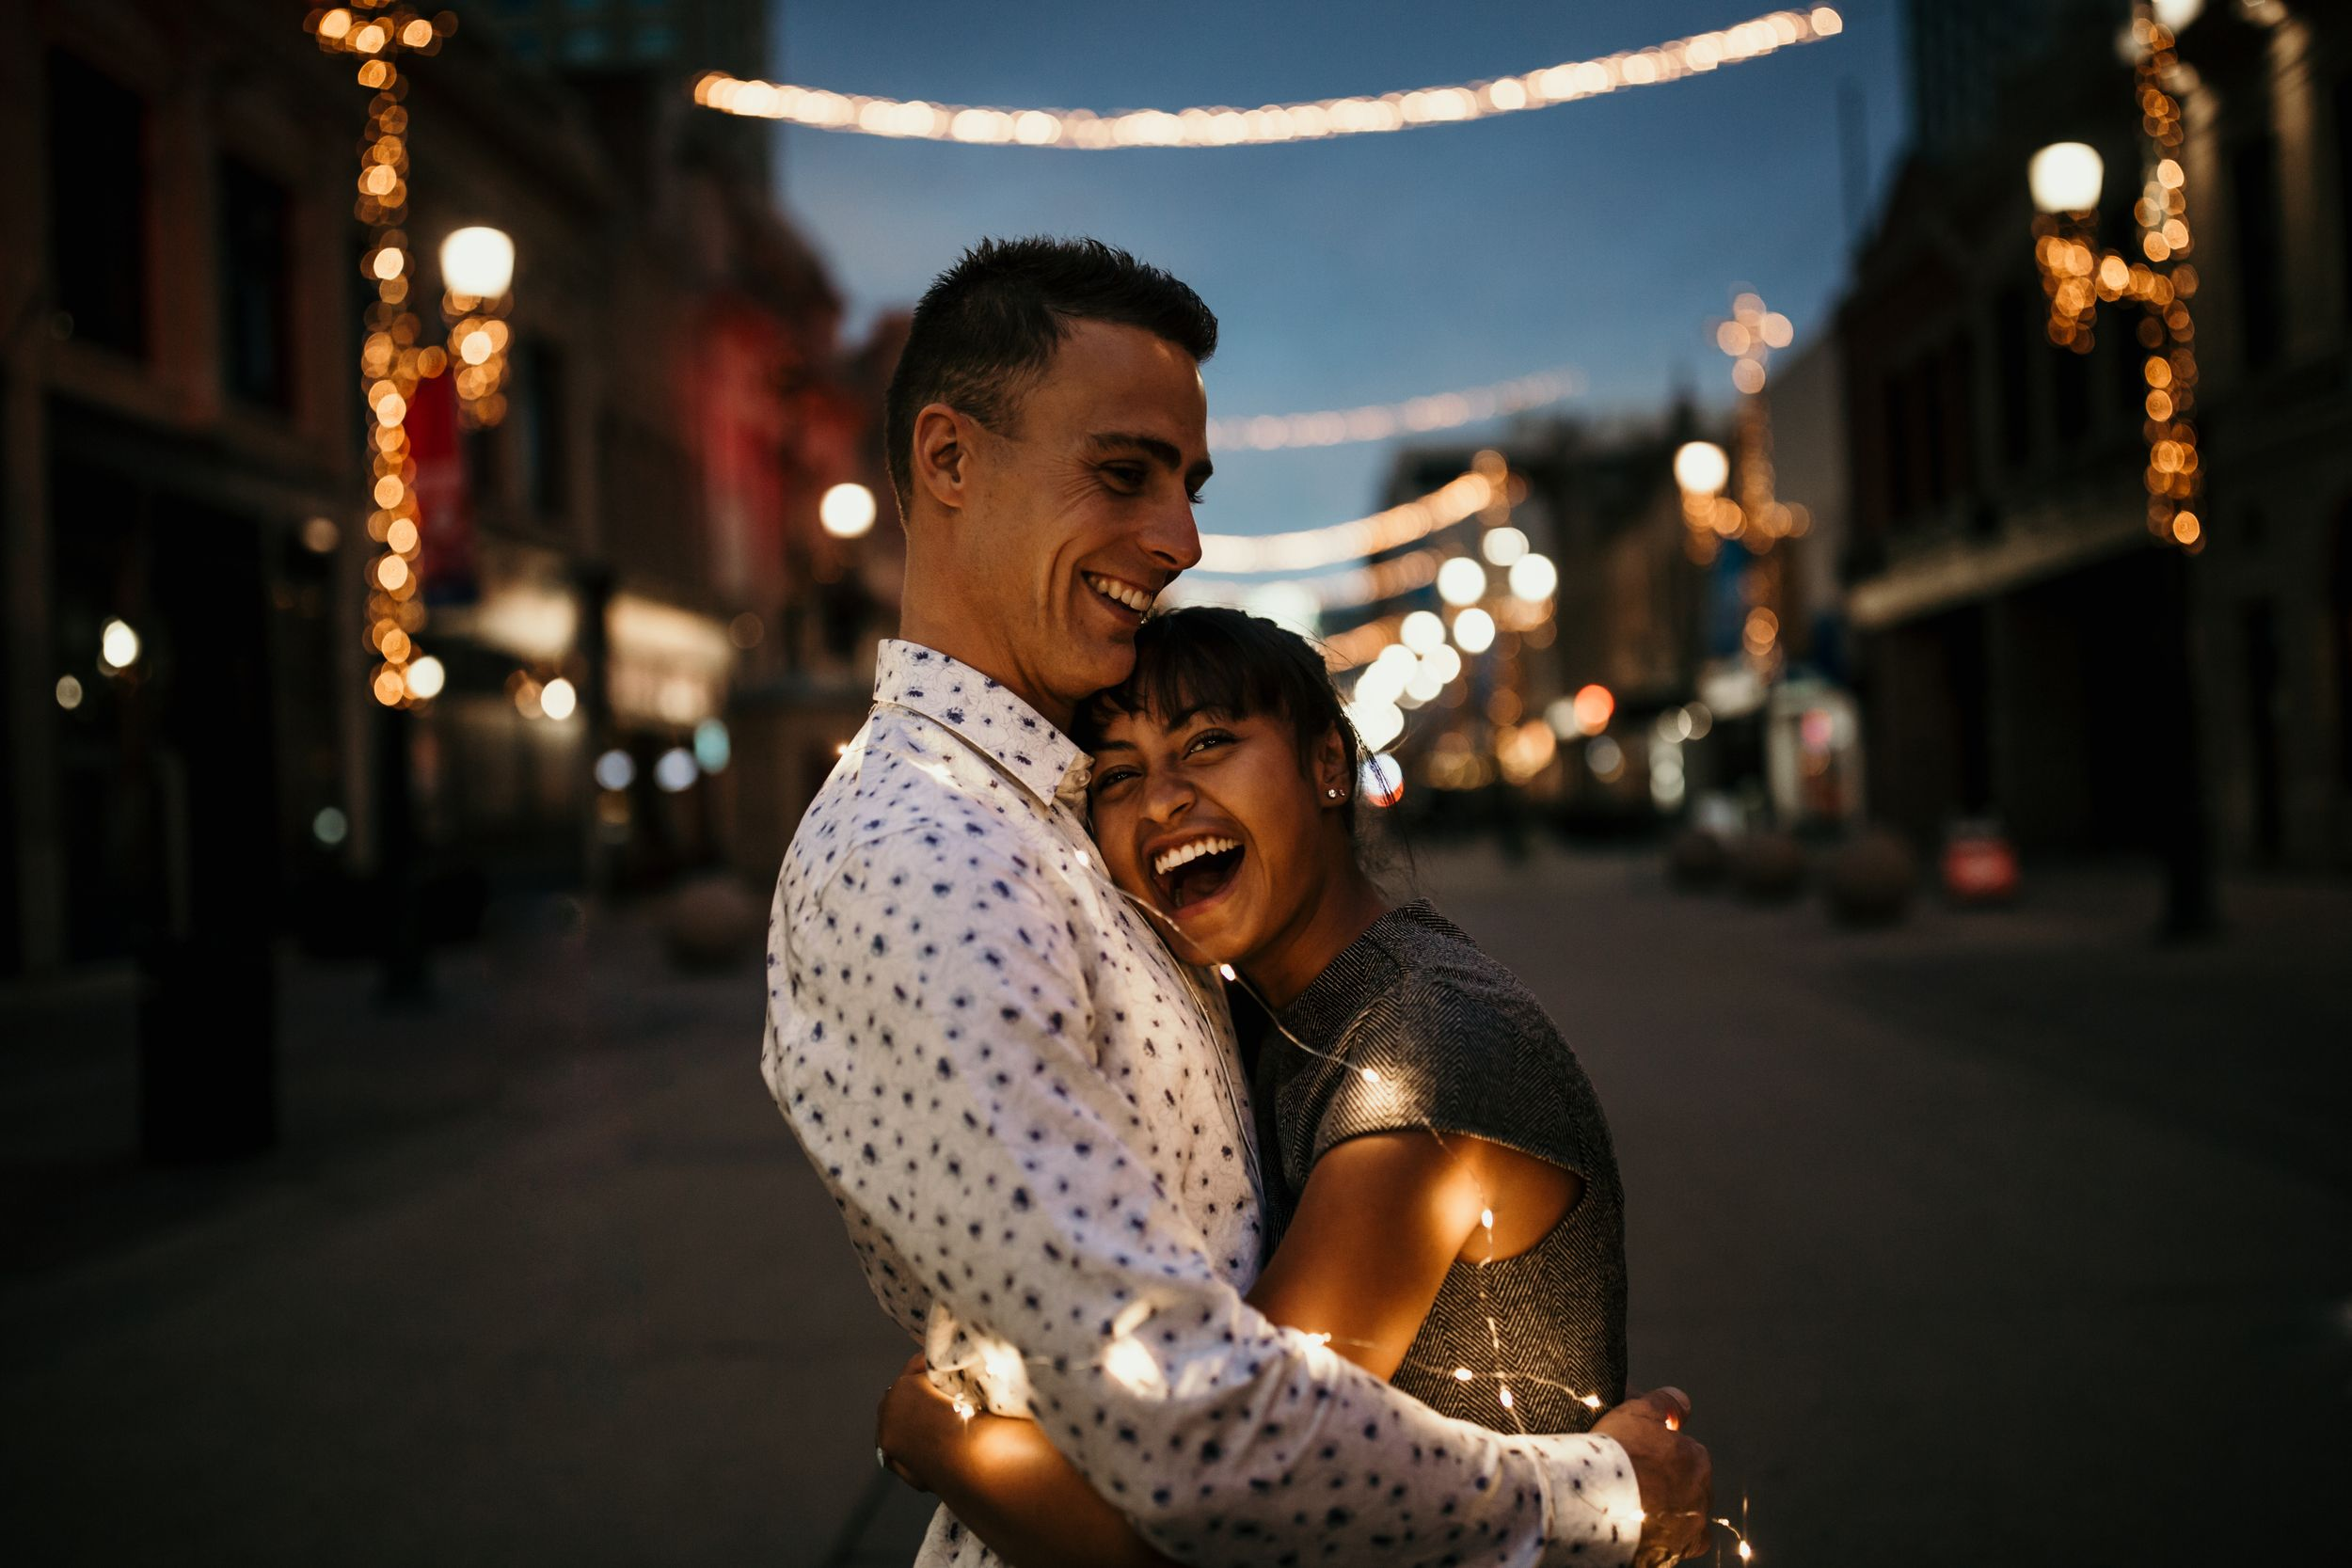 Couple embrace while laughing in front of twinkle lit street